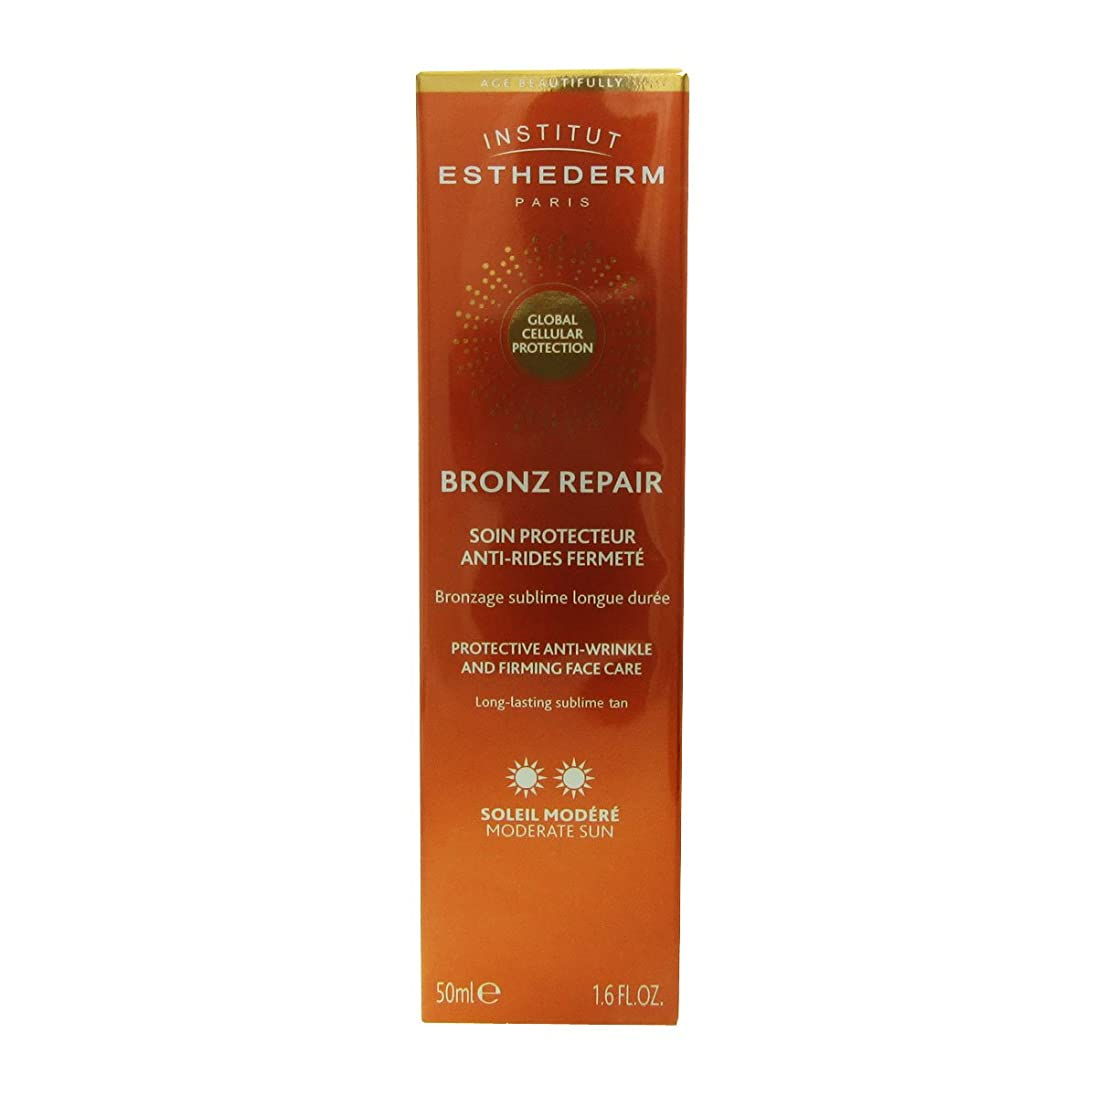 ルネッサンス有望センサーInstitut Esthederm Bronz Repair Protective Anti-wrinkle And Firming Face Care Moderate Sun 50ml [並行輸入品]